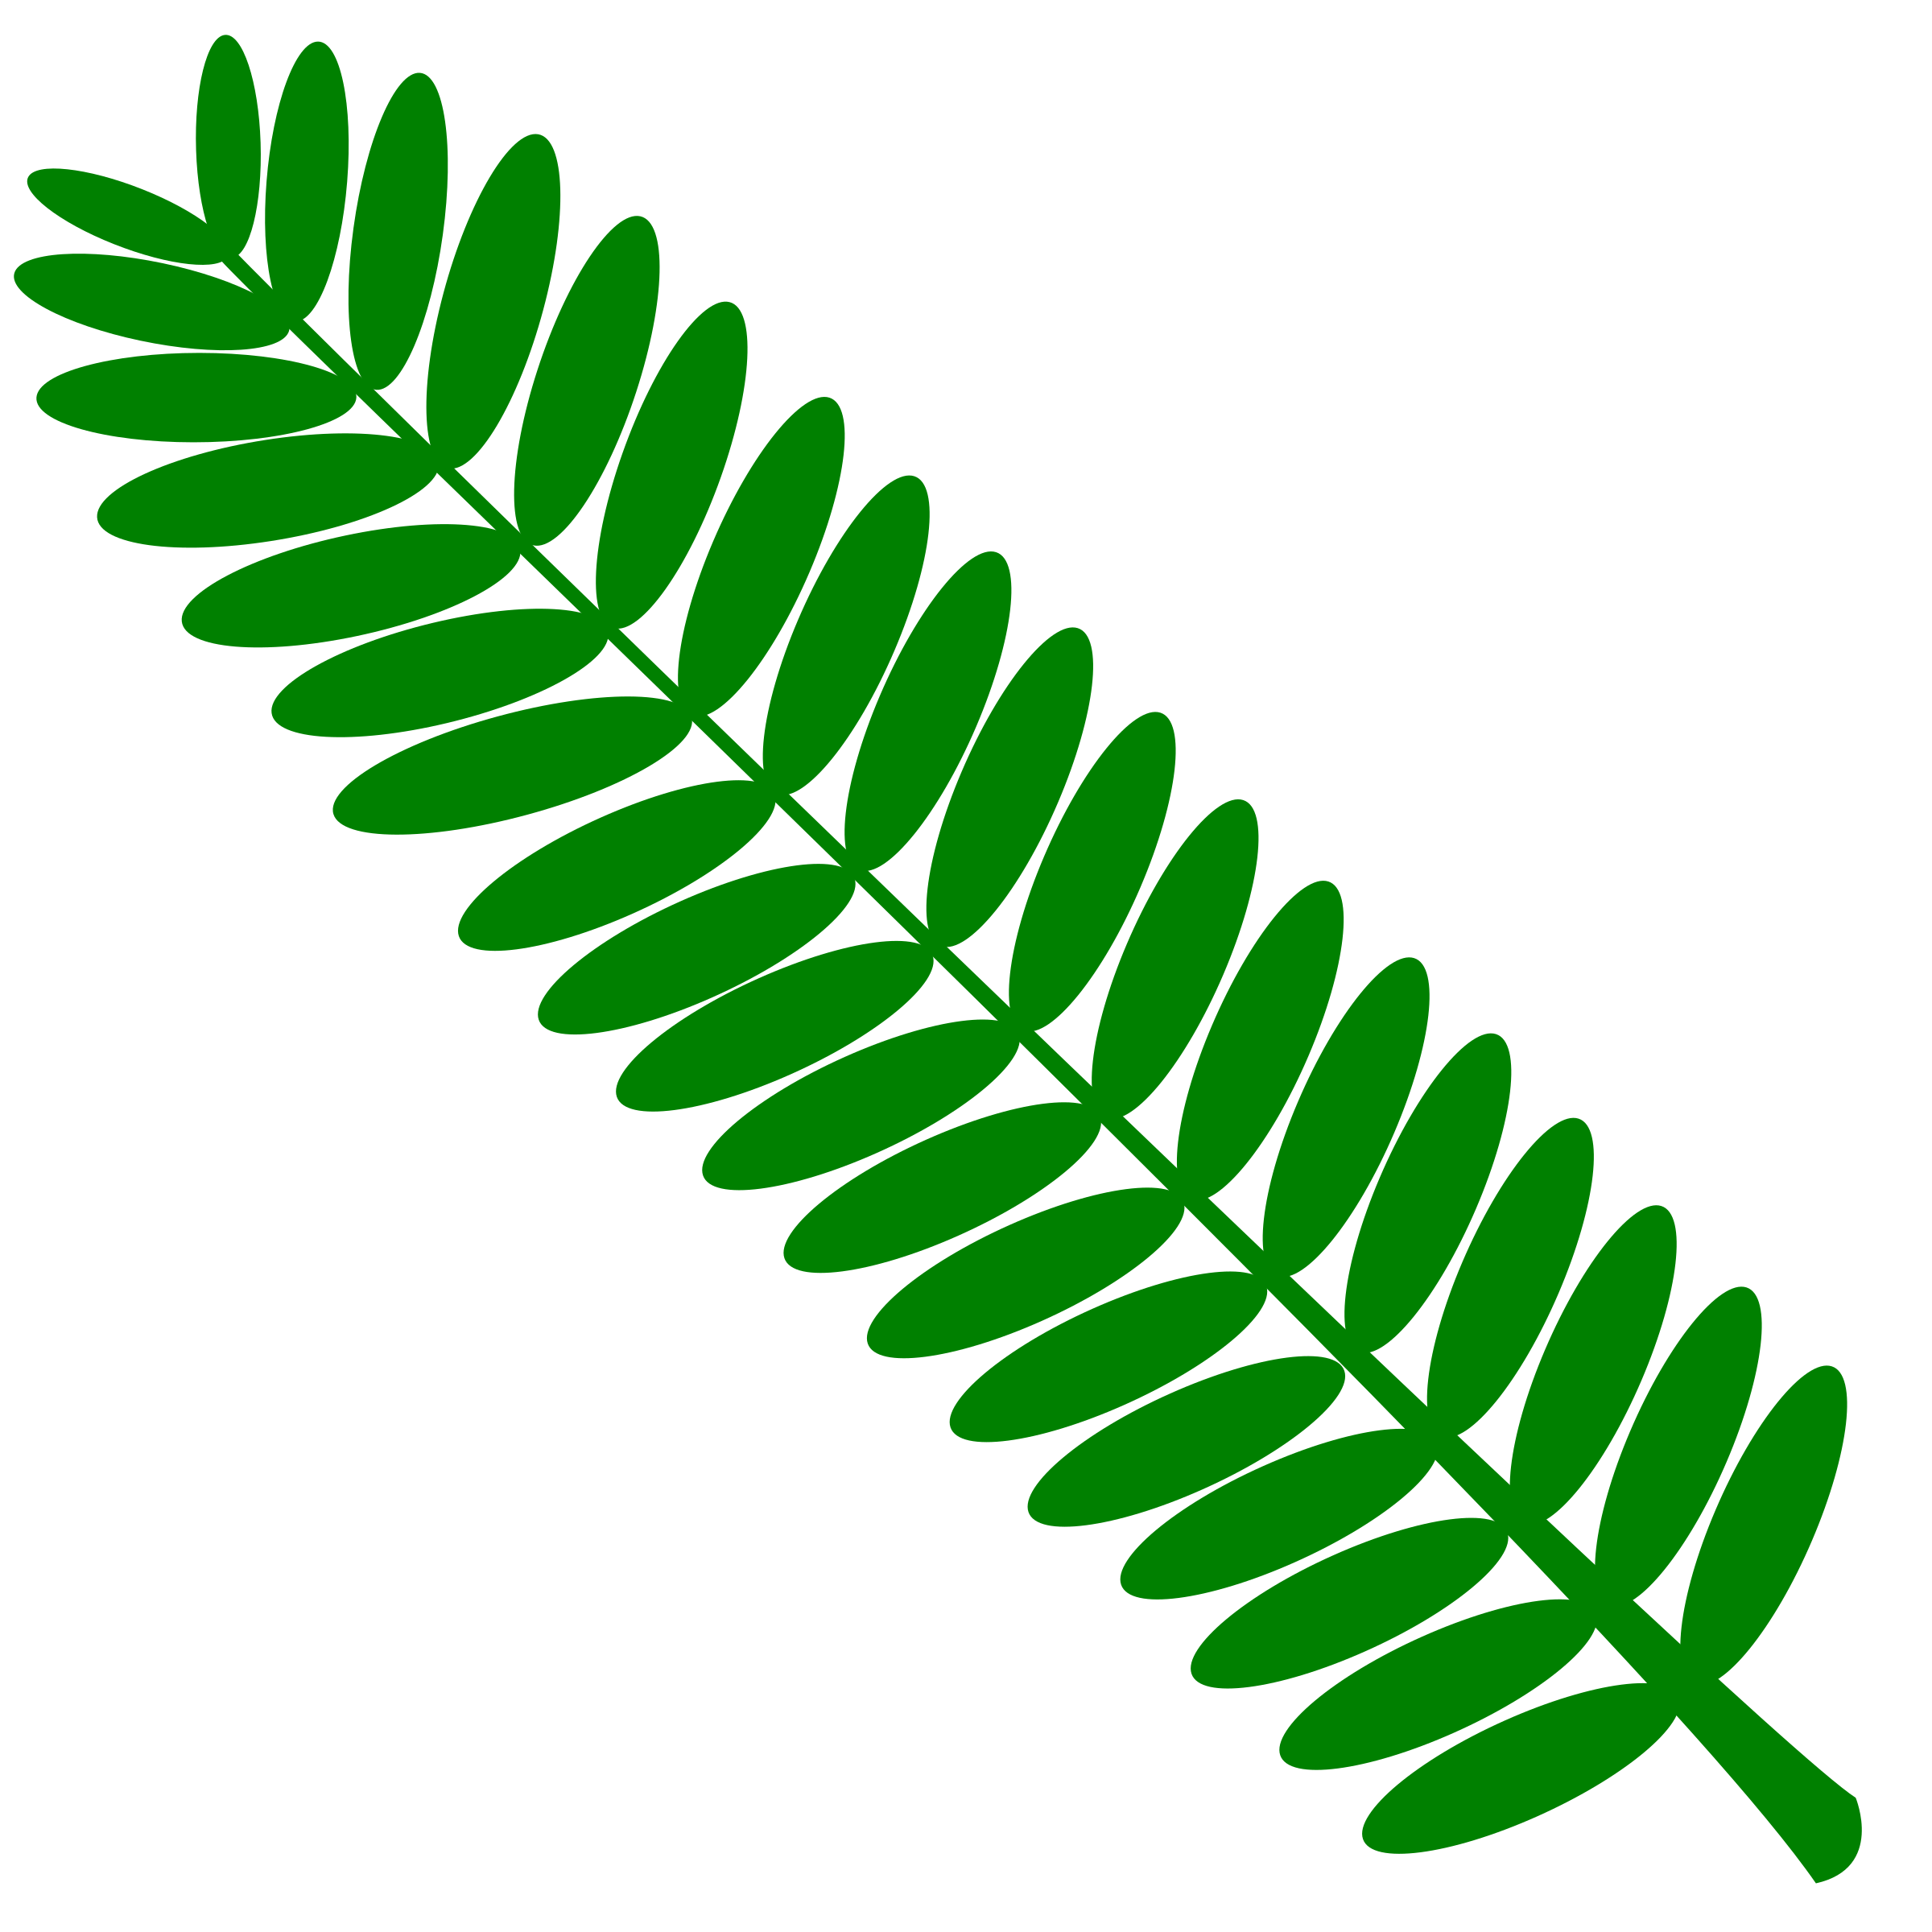 Leaf clipart twig. Mimosa touch me not